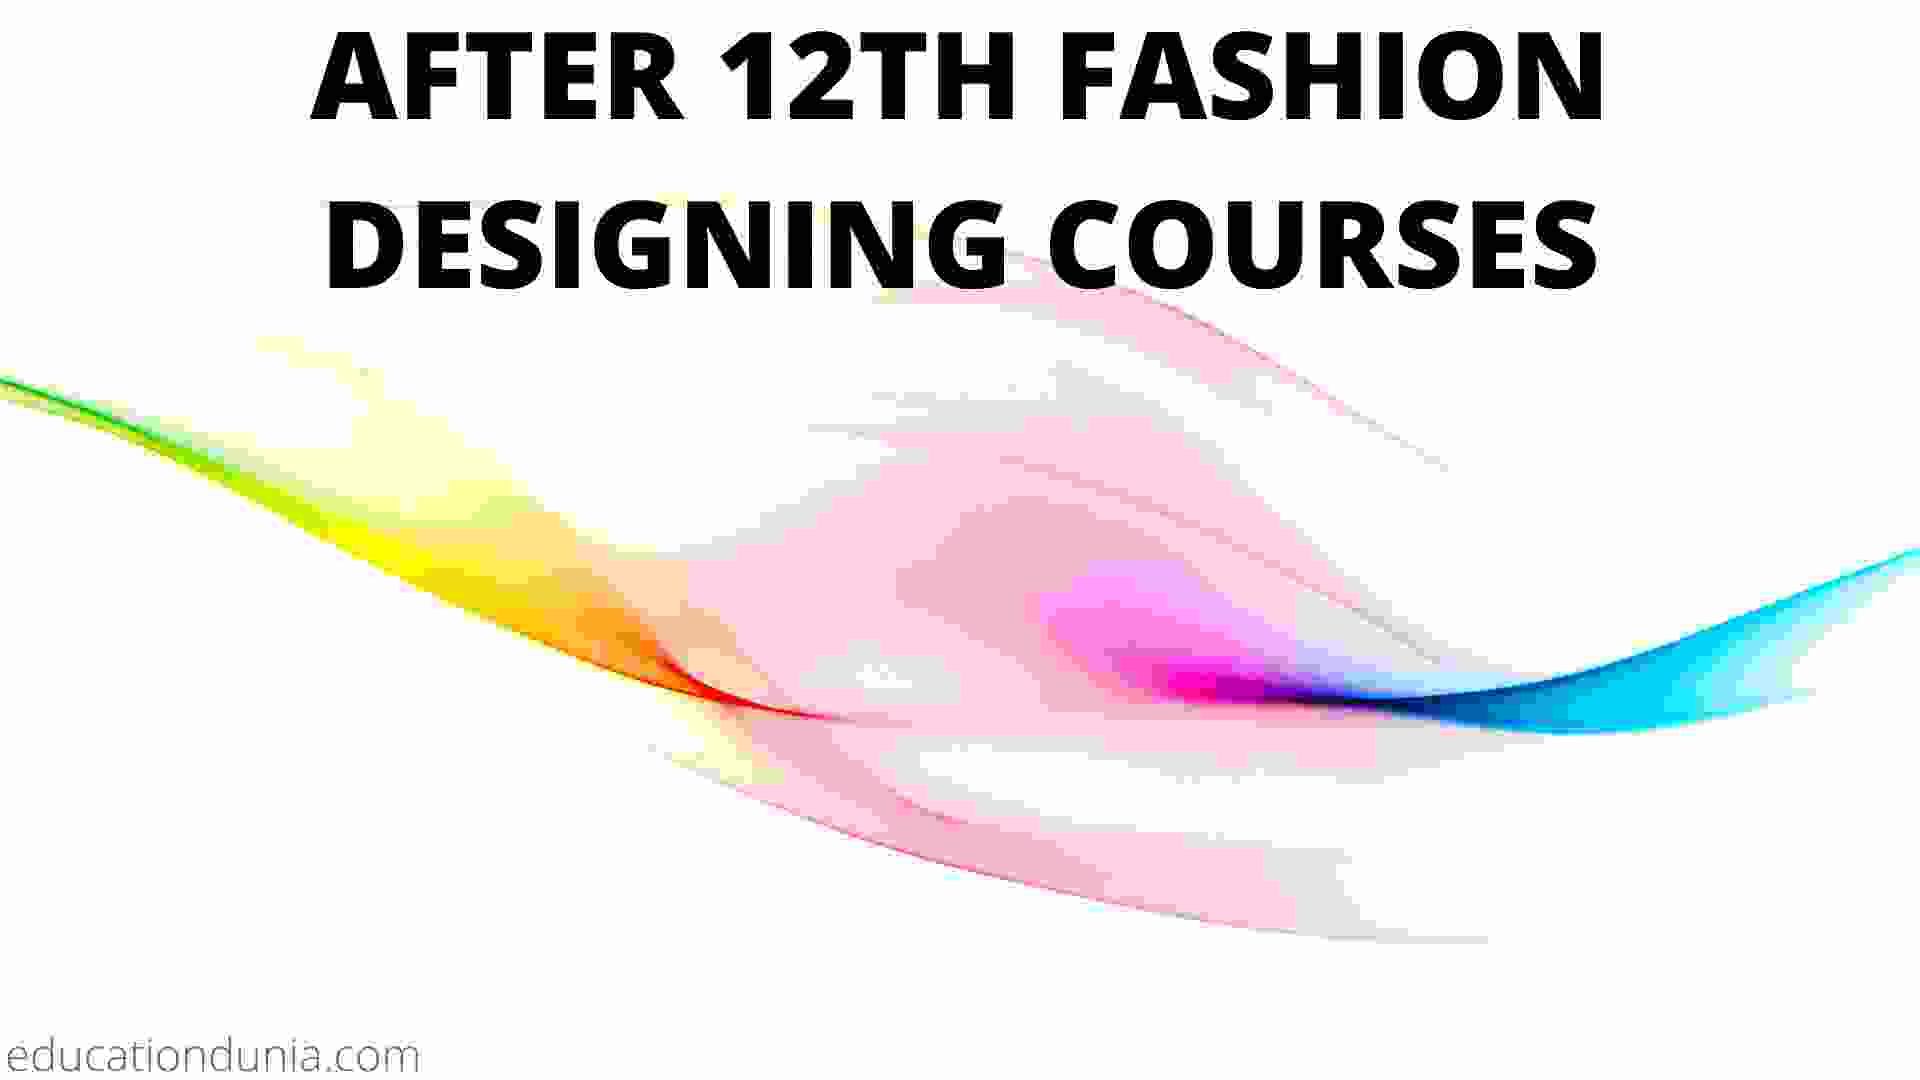 All Latest Information And Carrier Options In FASHION DESIGNING COURSES AFTER 12TH.